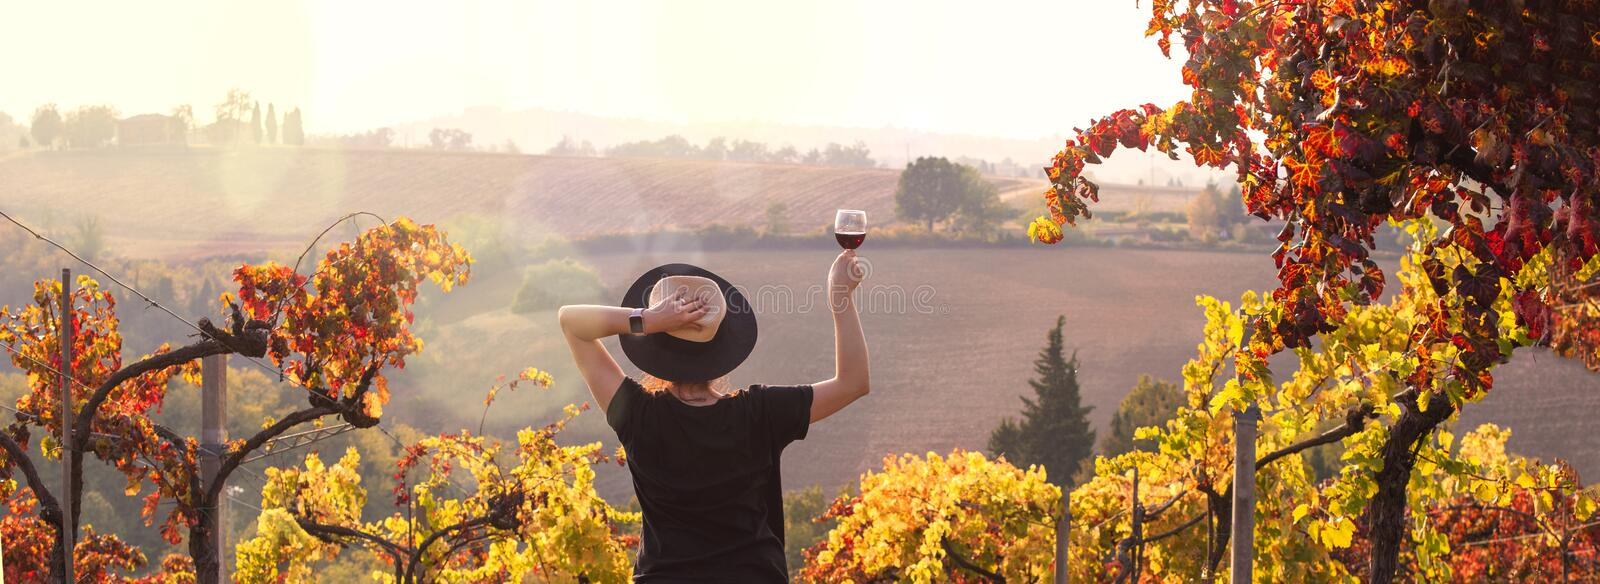 Girl in a hat at sunset and a glass of wine in hand. Nature Italy, hills and grape fields the sunlight. Glare and sun rays in the stock photography